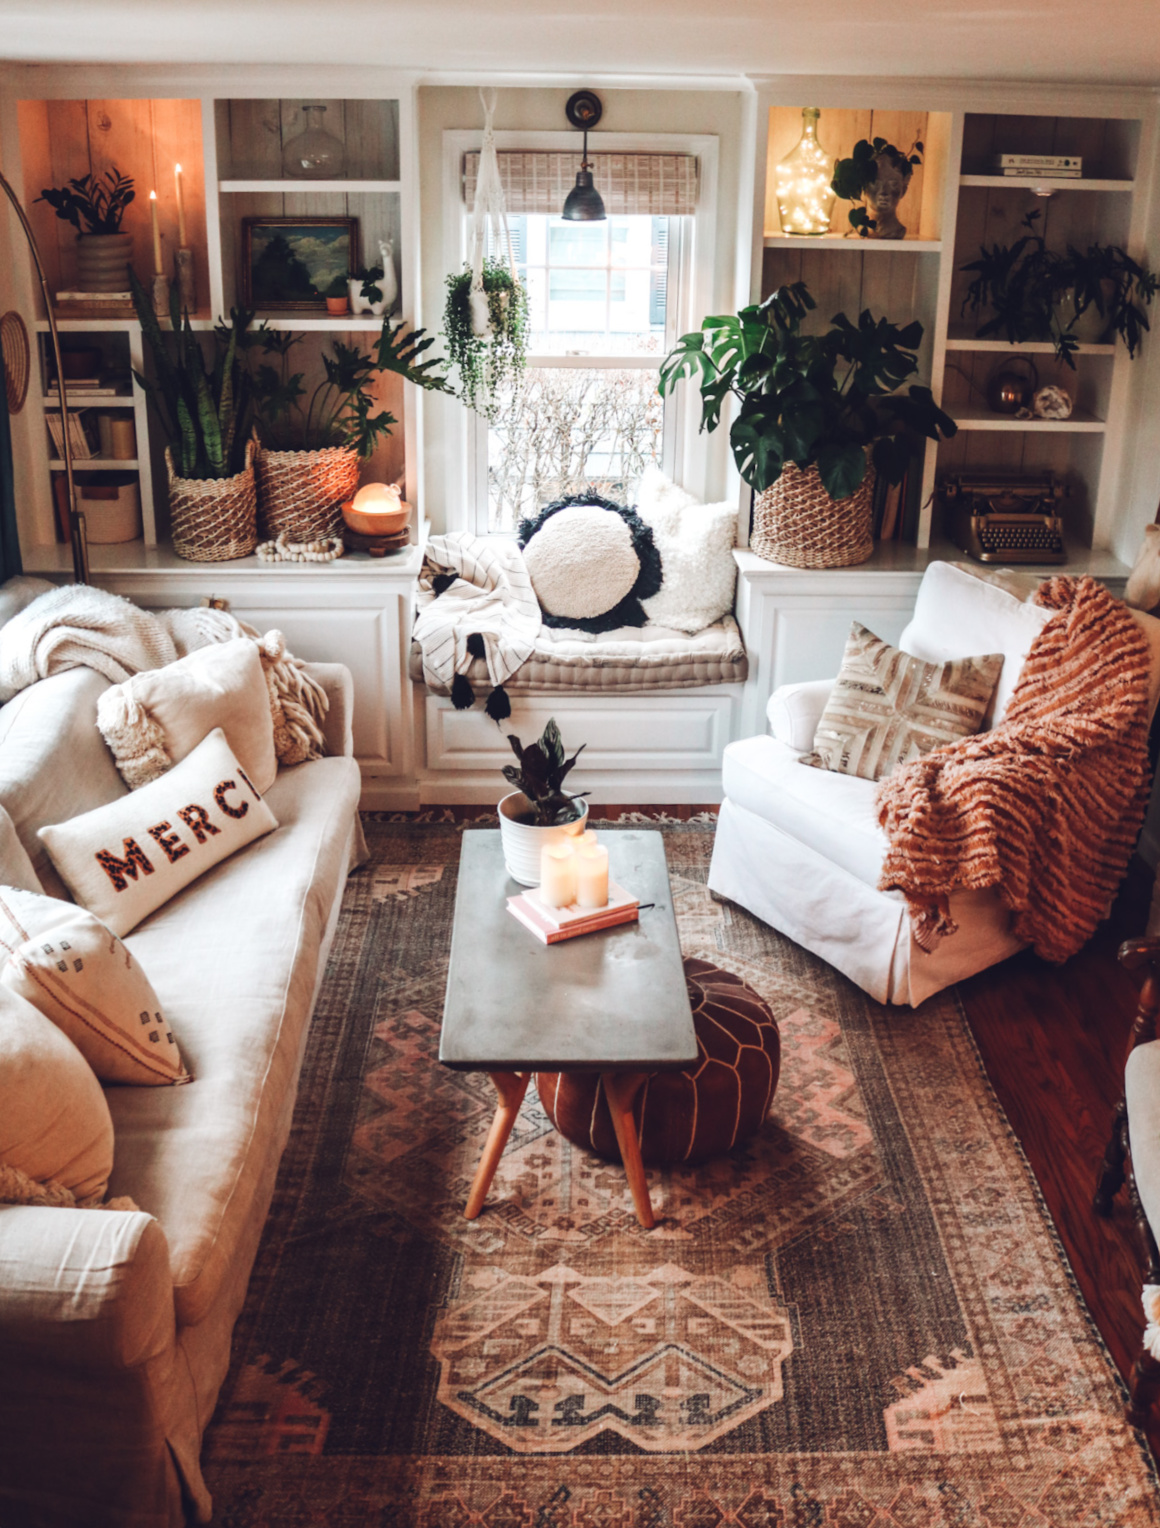 How To Pick The Right Size Rug With Guide Nesting With Grace